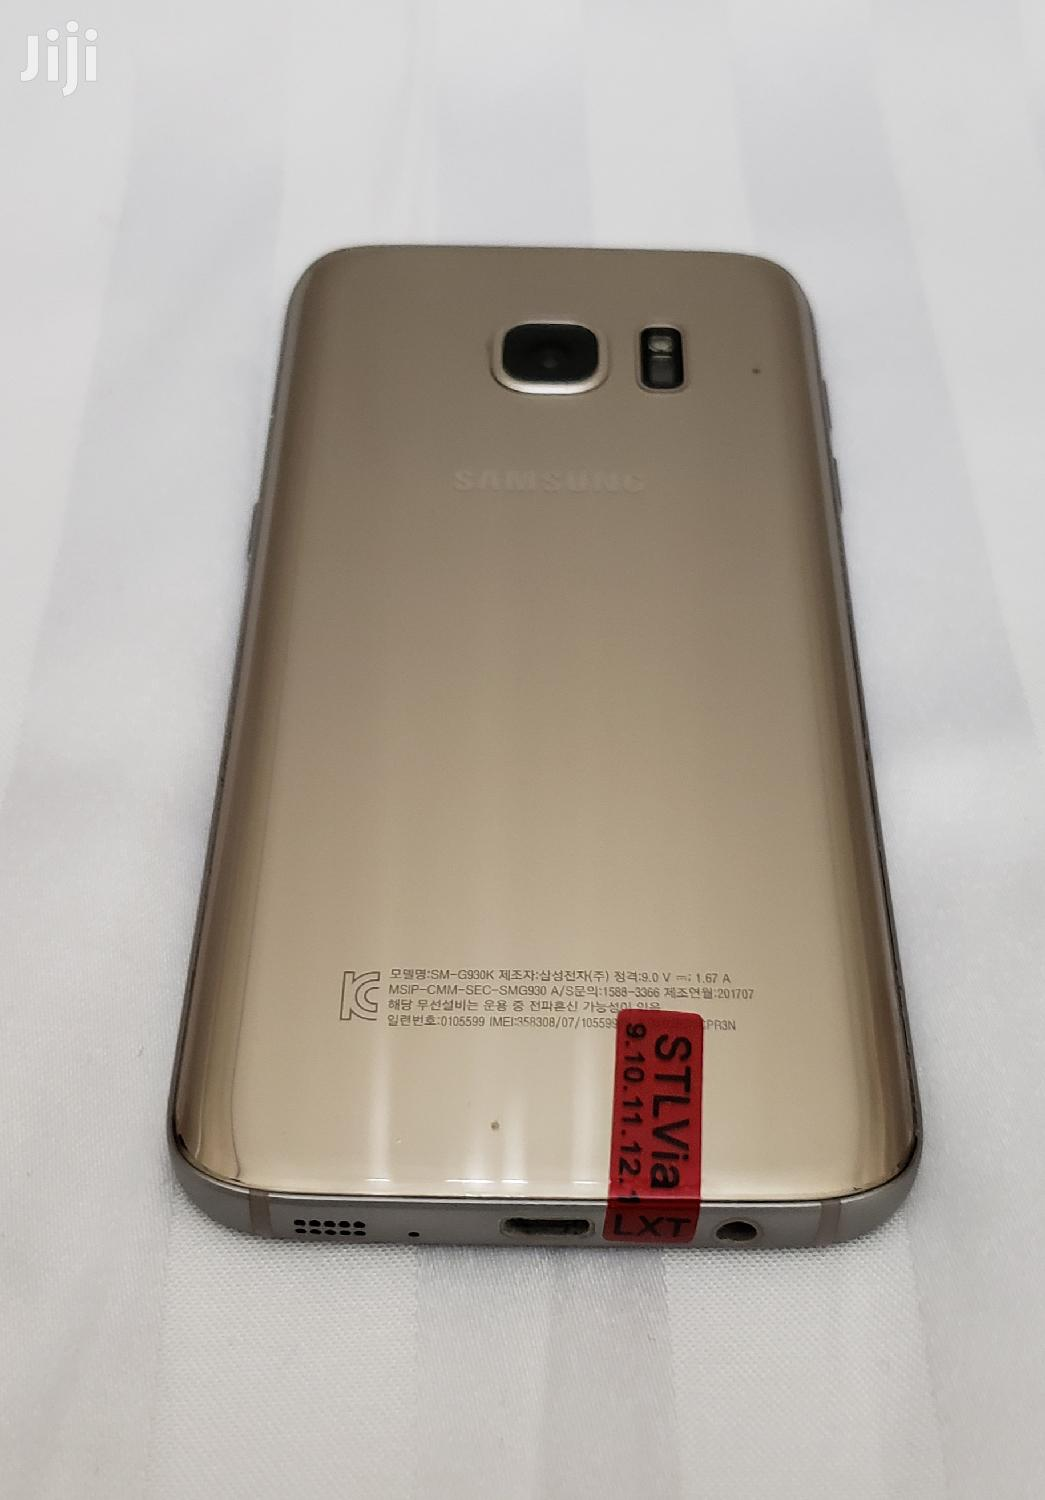 Samsung Galaxy S7 32 GB Gold | Mobile Phones for sale in Kampala, Central Region, Uganda